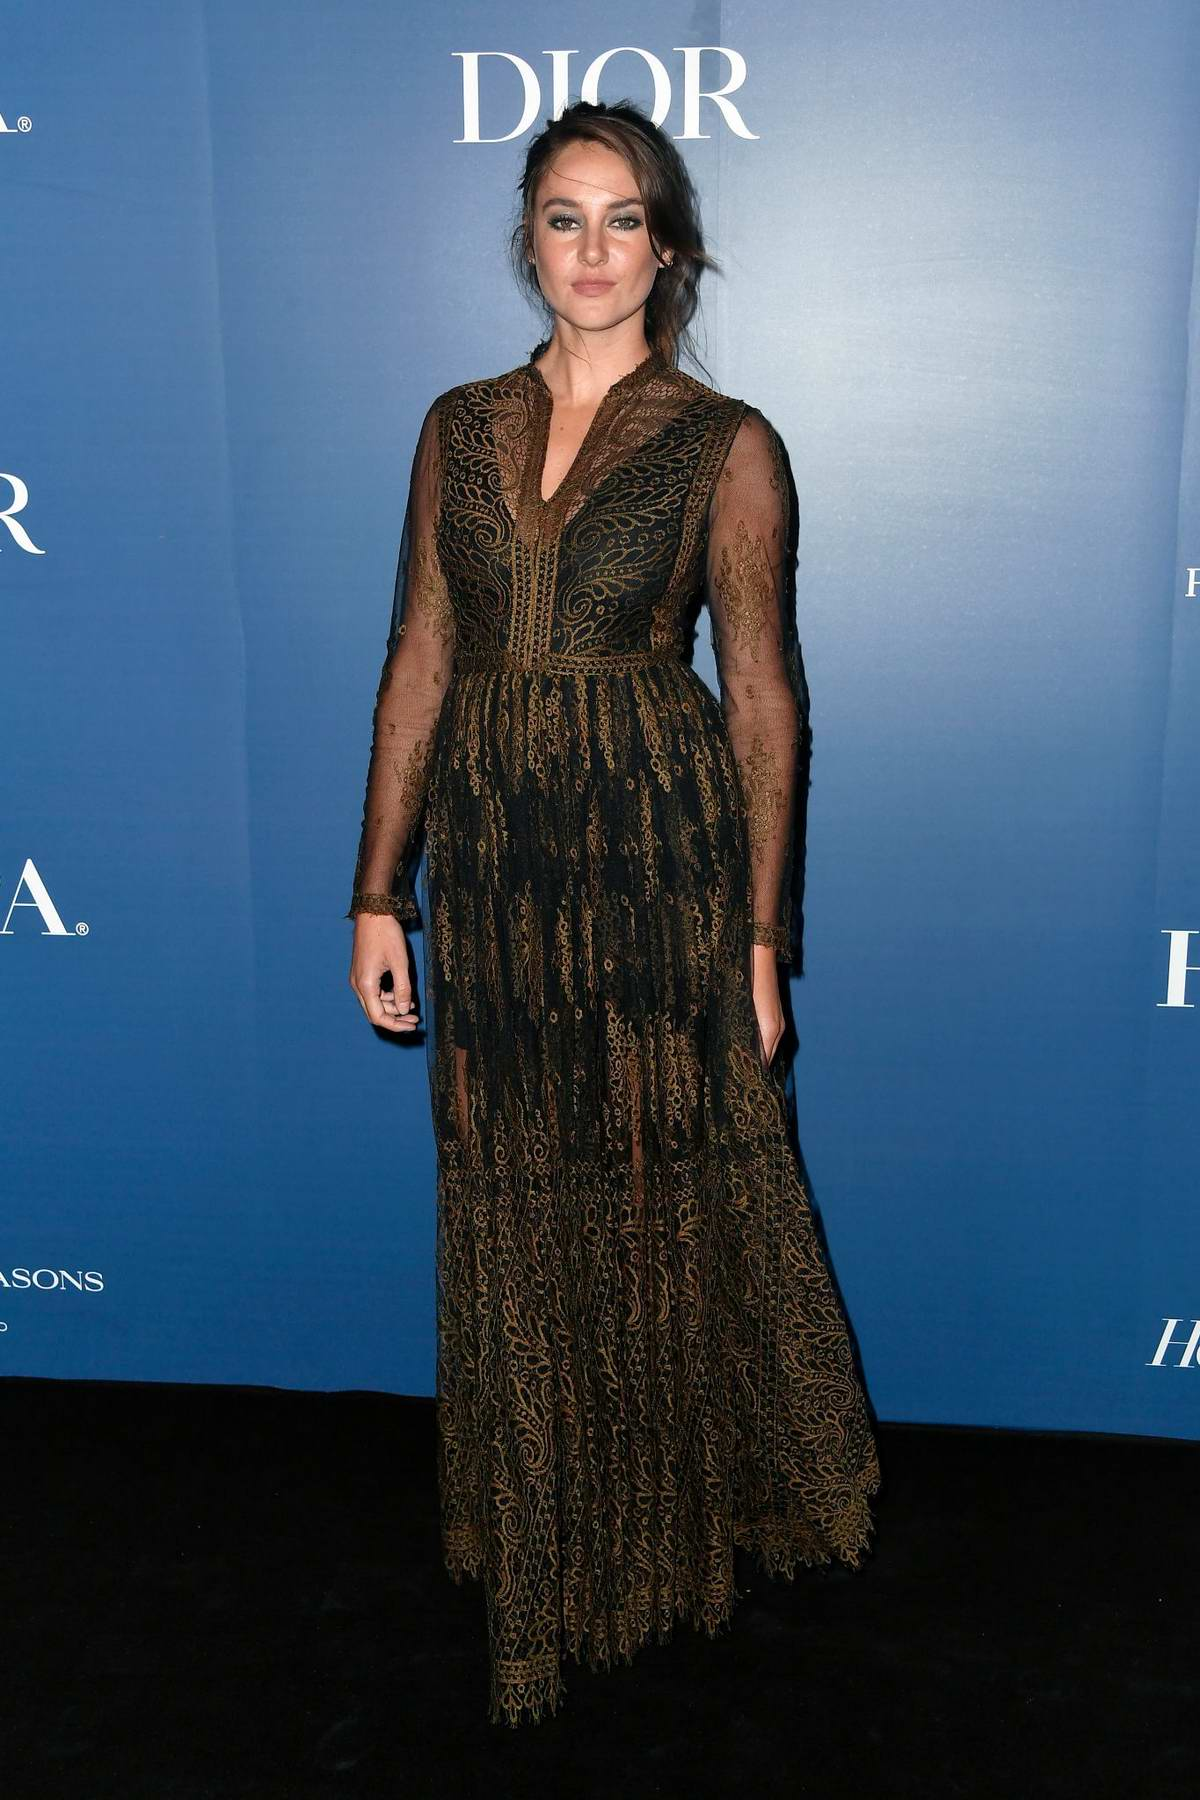 Shailene Woodley attends the Hollywood Reporter party during the 2019 Toronto International Film Festival in Toronto, Canada